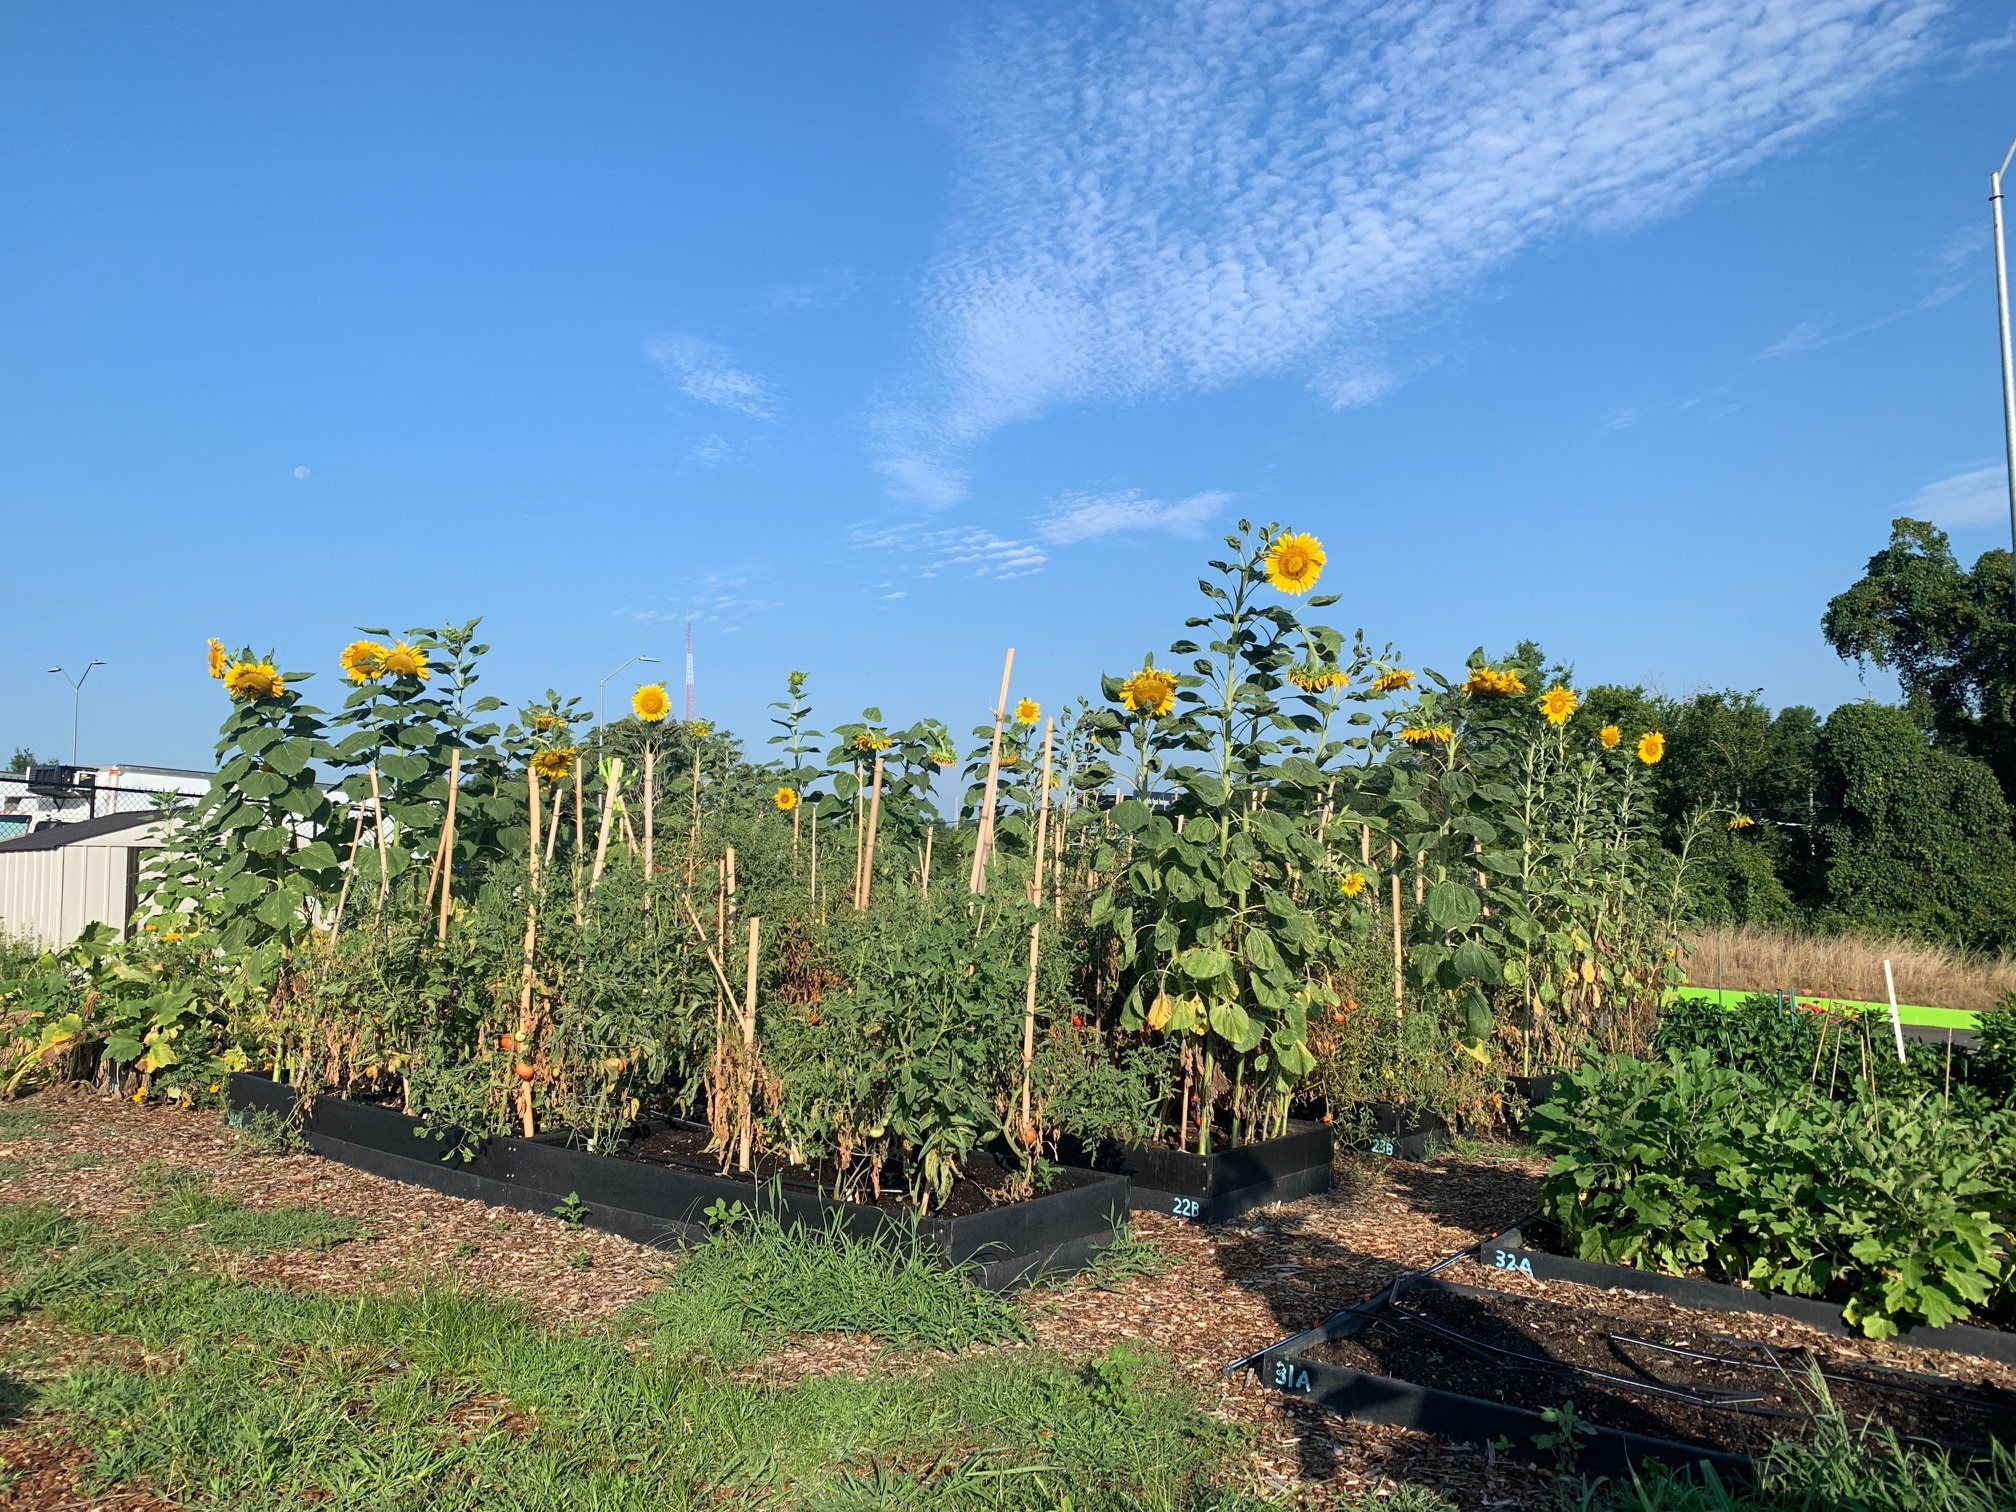 The Food Bank of Central and Eastern NC's demonstration garden